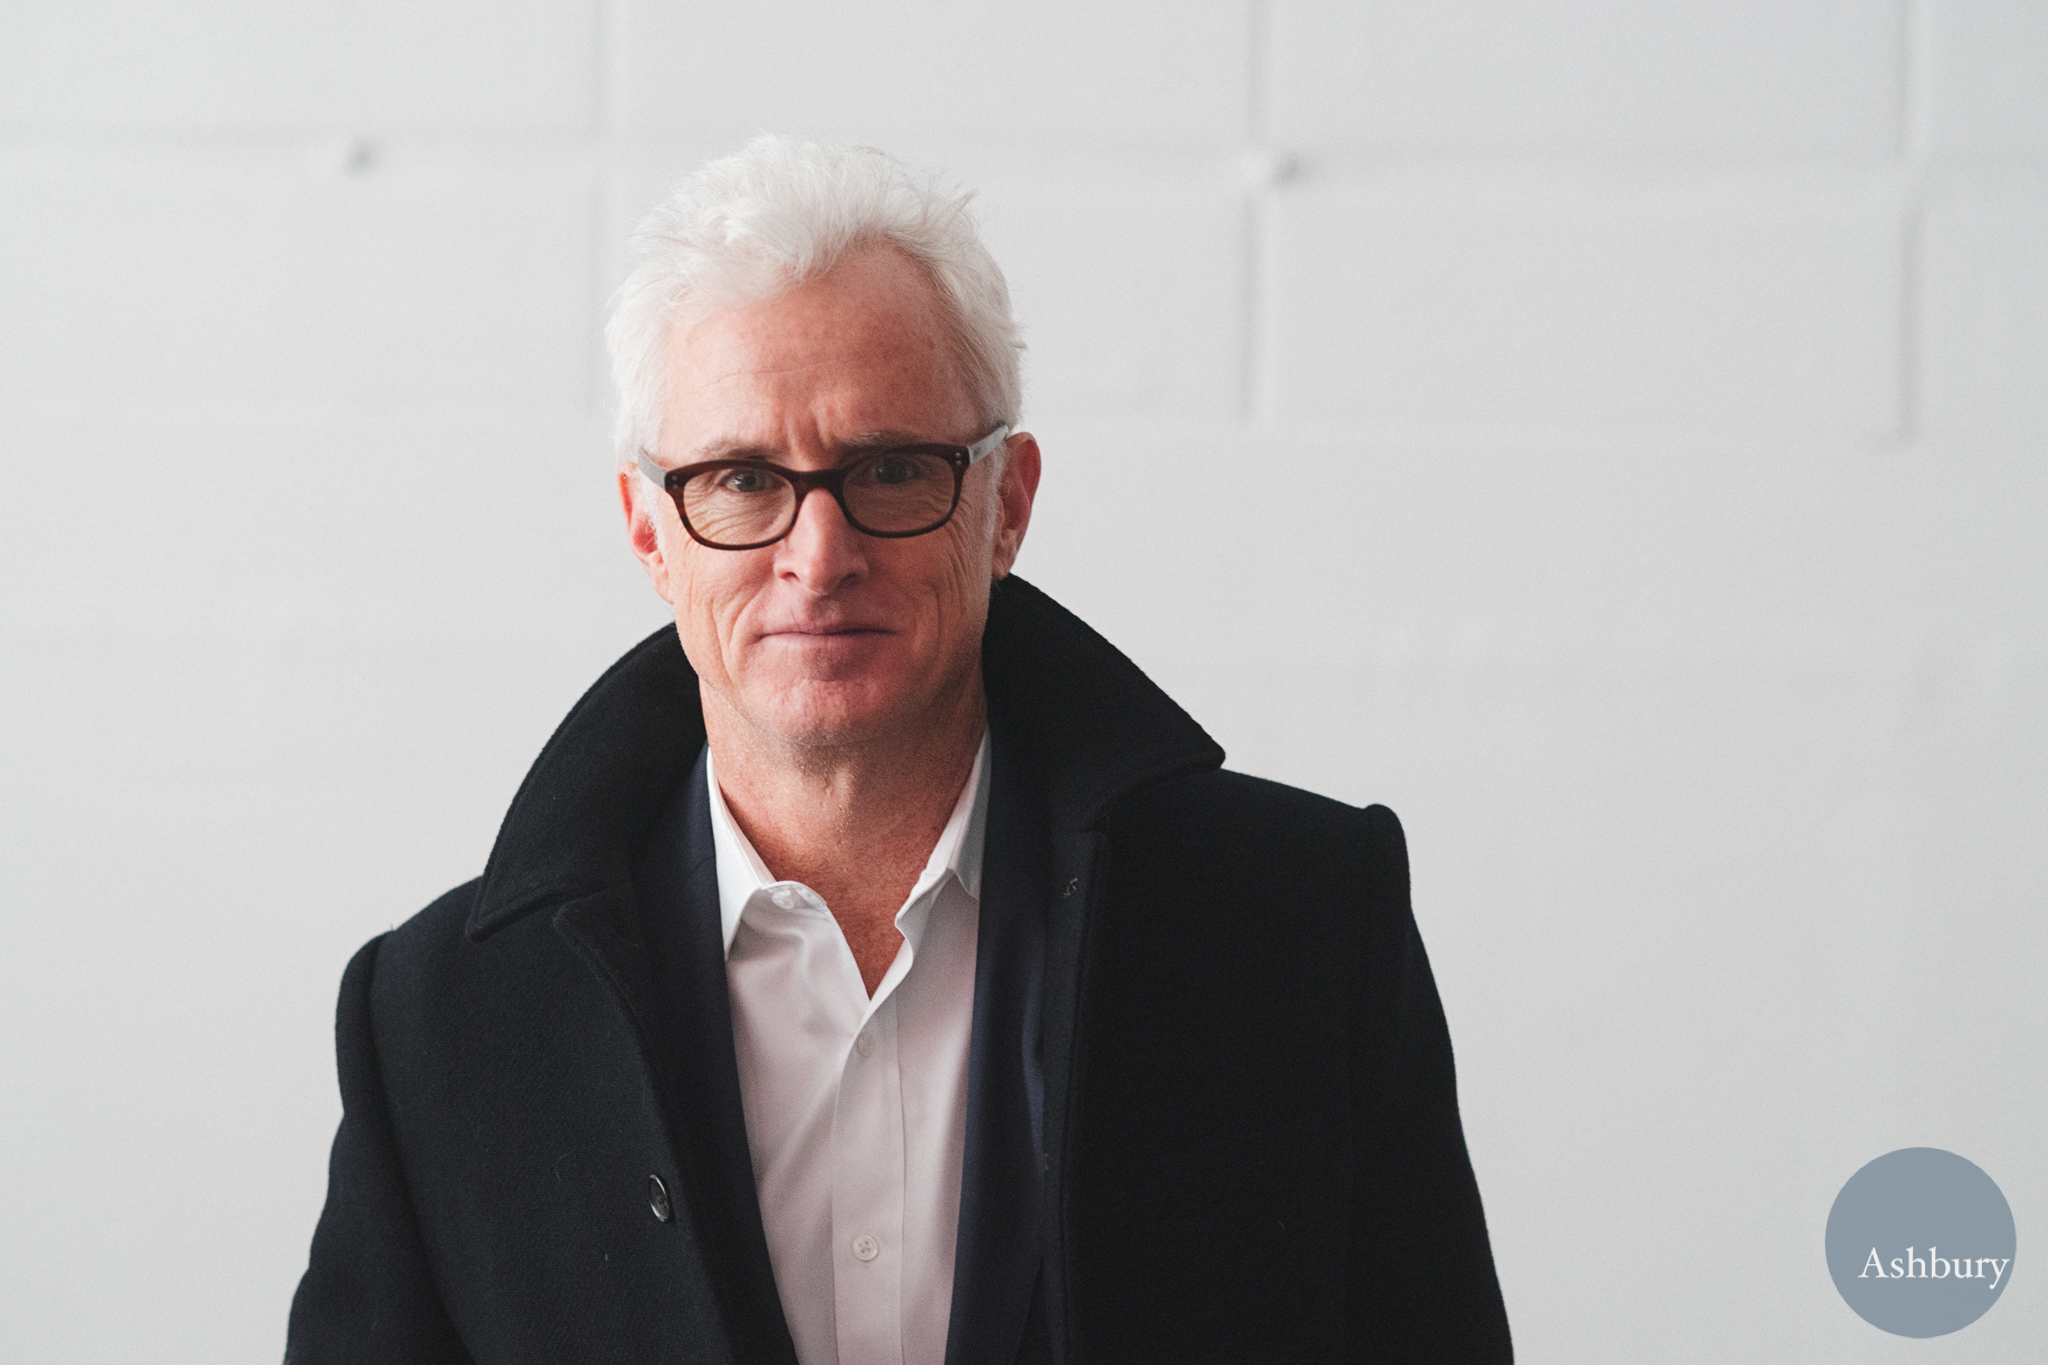 john slattery wifejohn slattery young, john slattery height, john slattery wife, john slattery iron man, john slattery embraer, john slattery emmy, john slattery glasses, john slattery, john slattery howard stark, john slattery desperate housewives, john slattery ant man, john slattery interview, john slattery movies, john slattery gq, john slattery height weight, john slattery imdb, john slattery net worth, john slattery morgan stanley, john slattery cbs, john slattery sex and the city